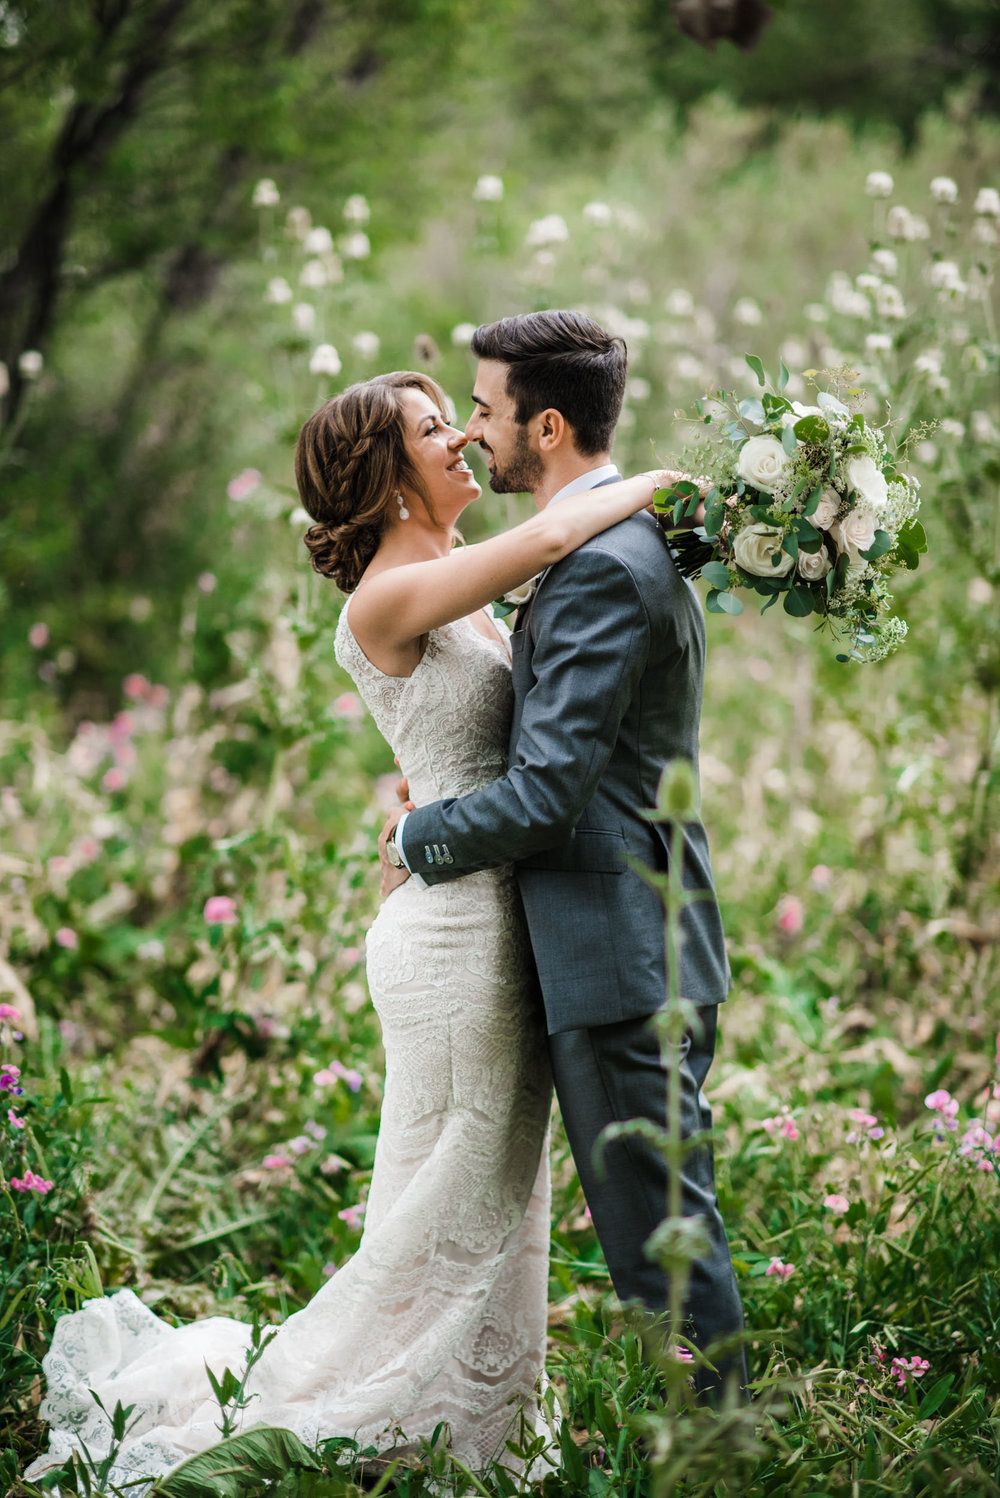 Bride and groom madly in love at spirited, genuine, colorful Colorado mountain wedding photographer